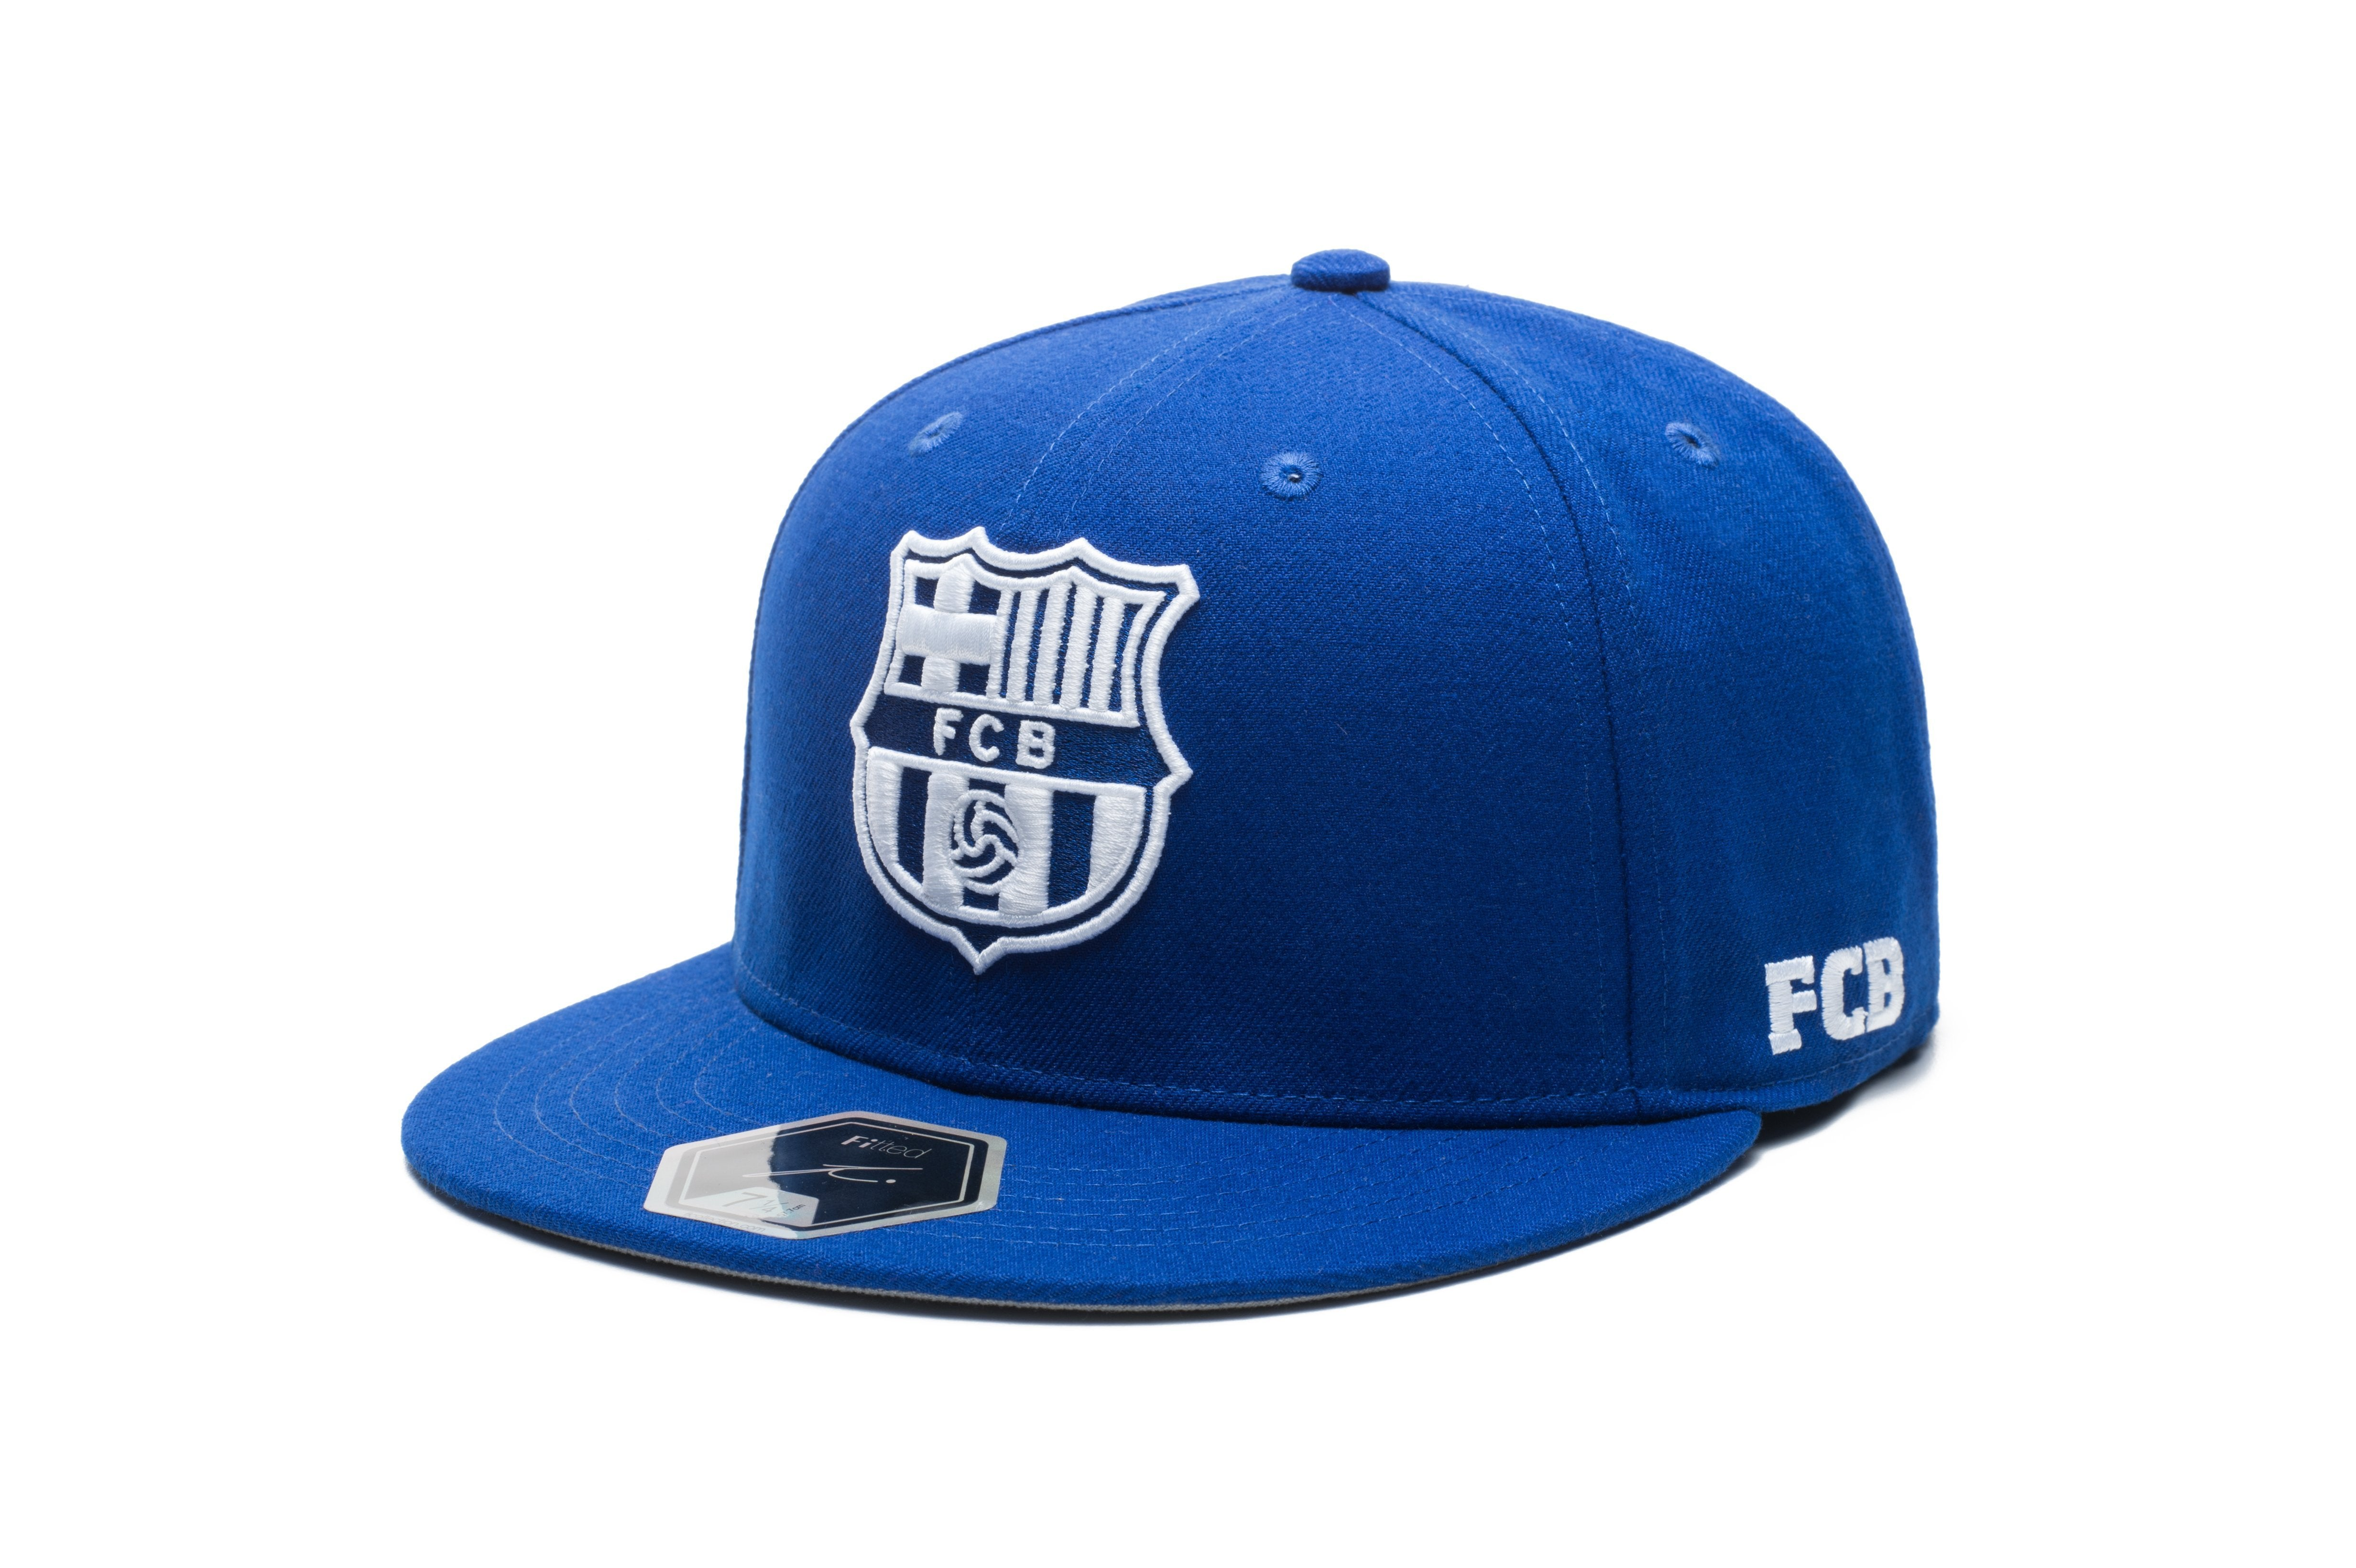 b4f878e294f49 Limited Edition Barcelona Fitted Hat - Lt Royal